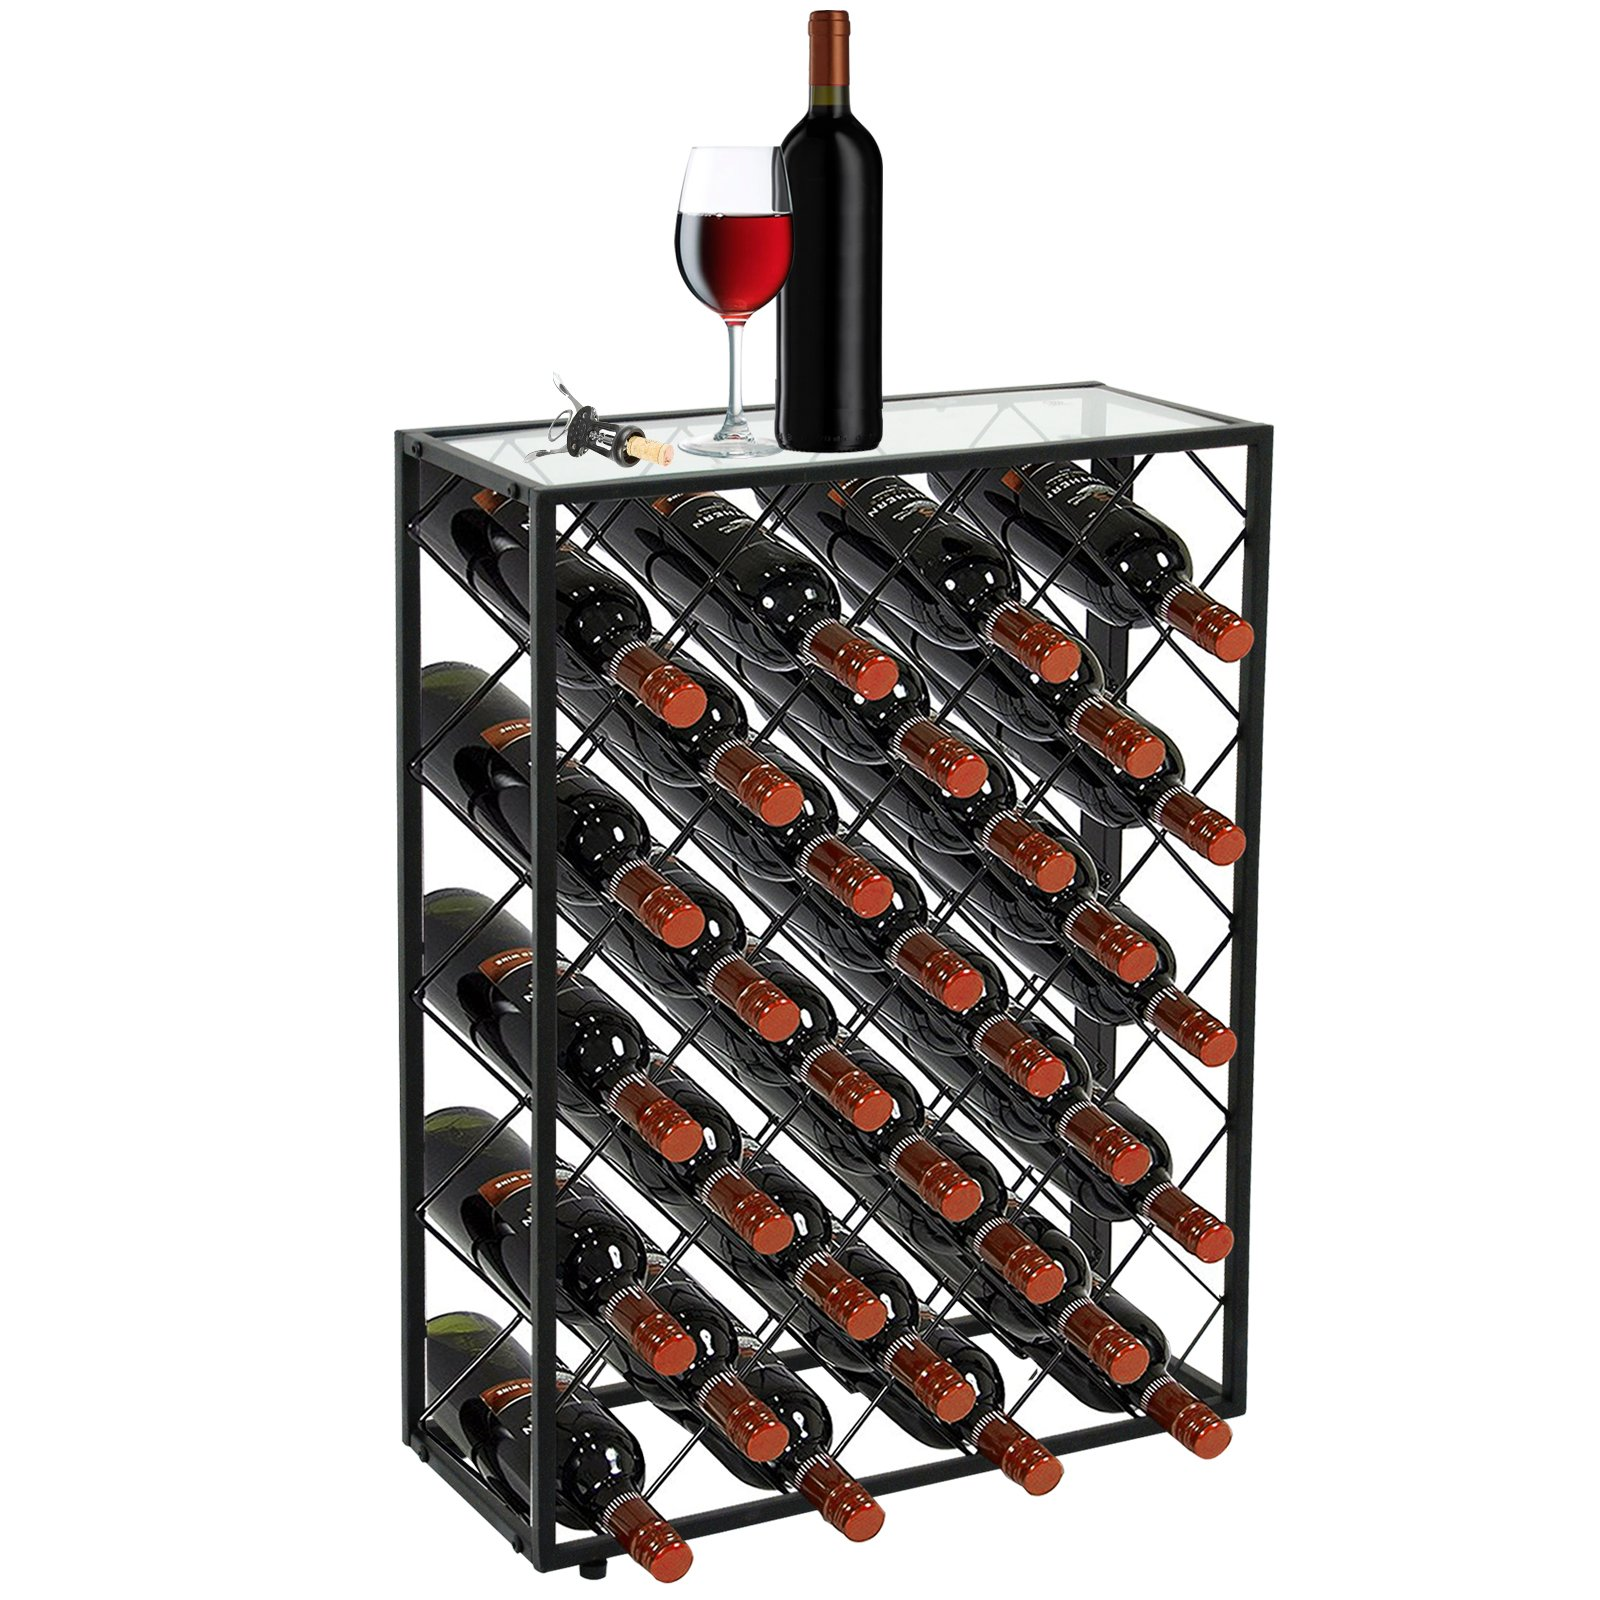 Smartxchoices 32 Bottle Black Steel Wine Rack with Thick Glass Table Top Free Standing Floor Wine Storage Organizer Display Shelves Wobble-Free